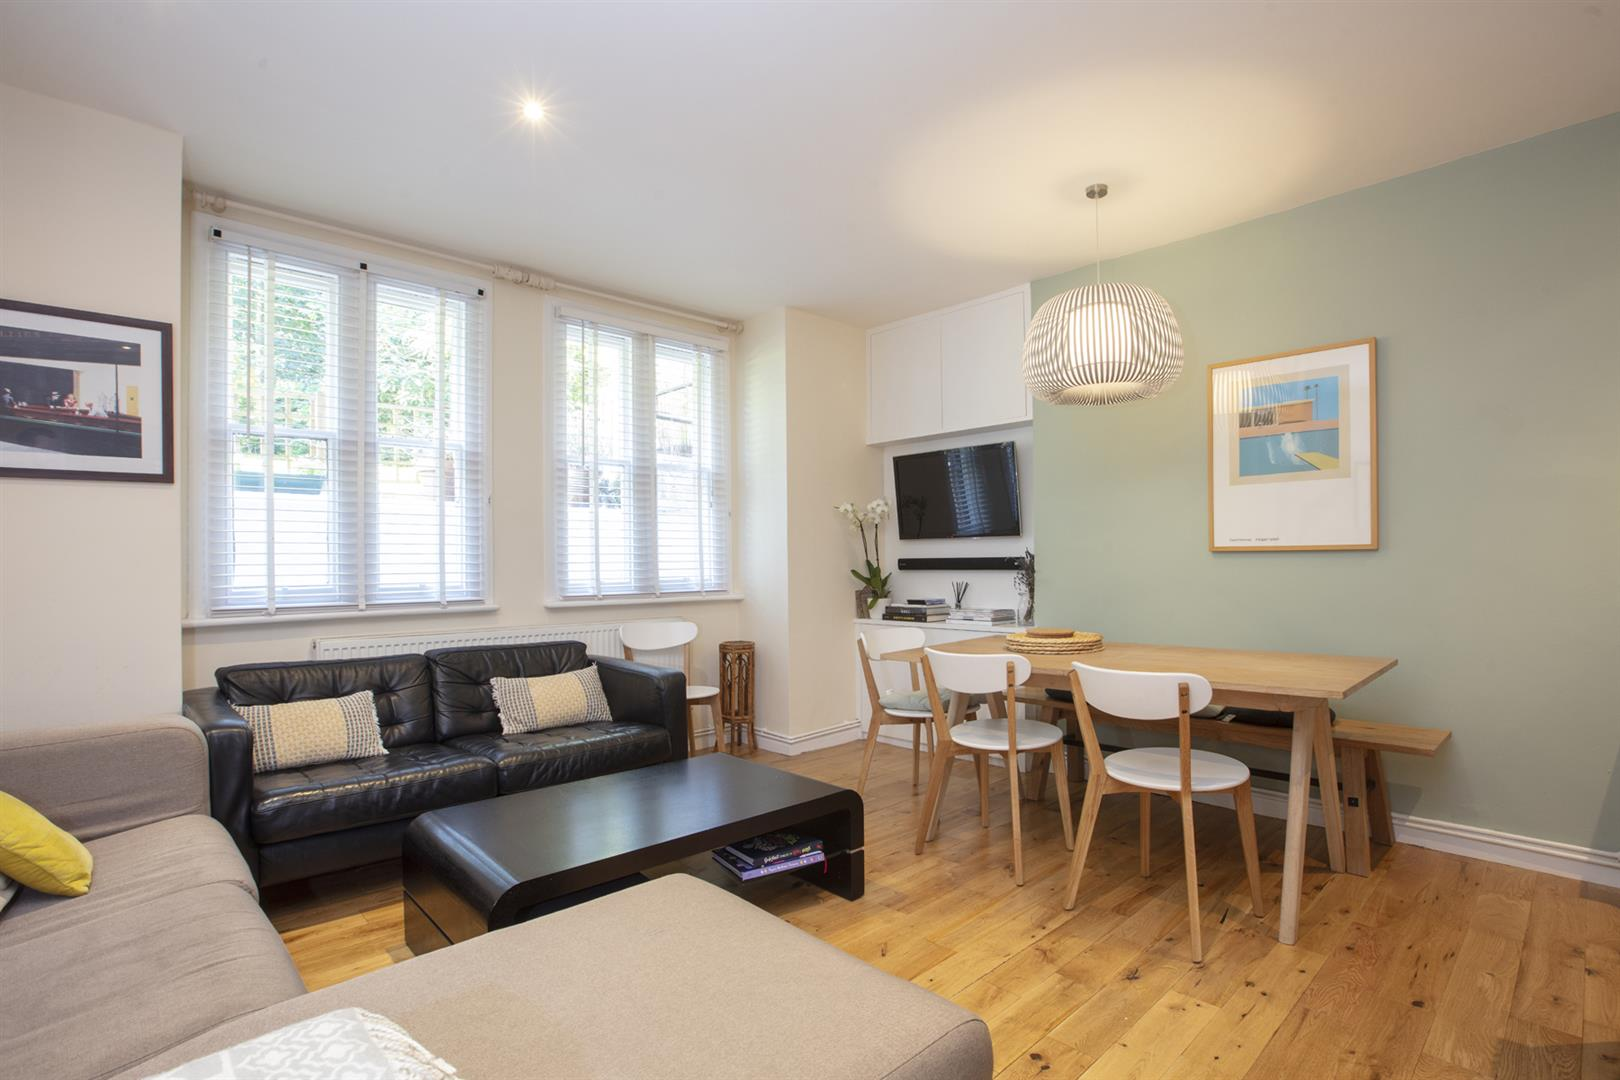 Flat - Conversion For Sale in Crystal Palace Park Road, Sydenham, SE26 698 view6